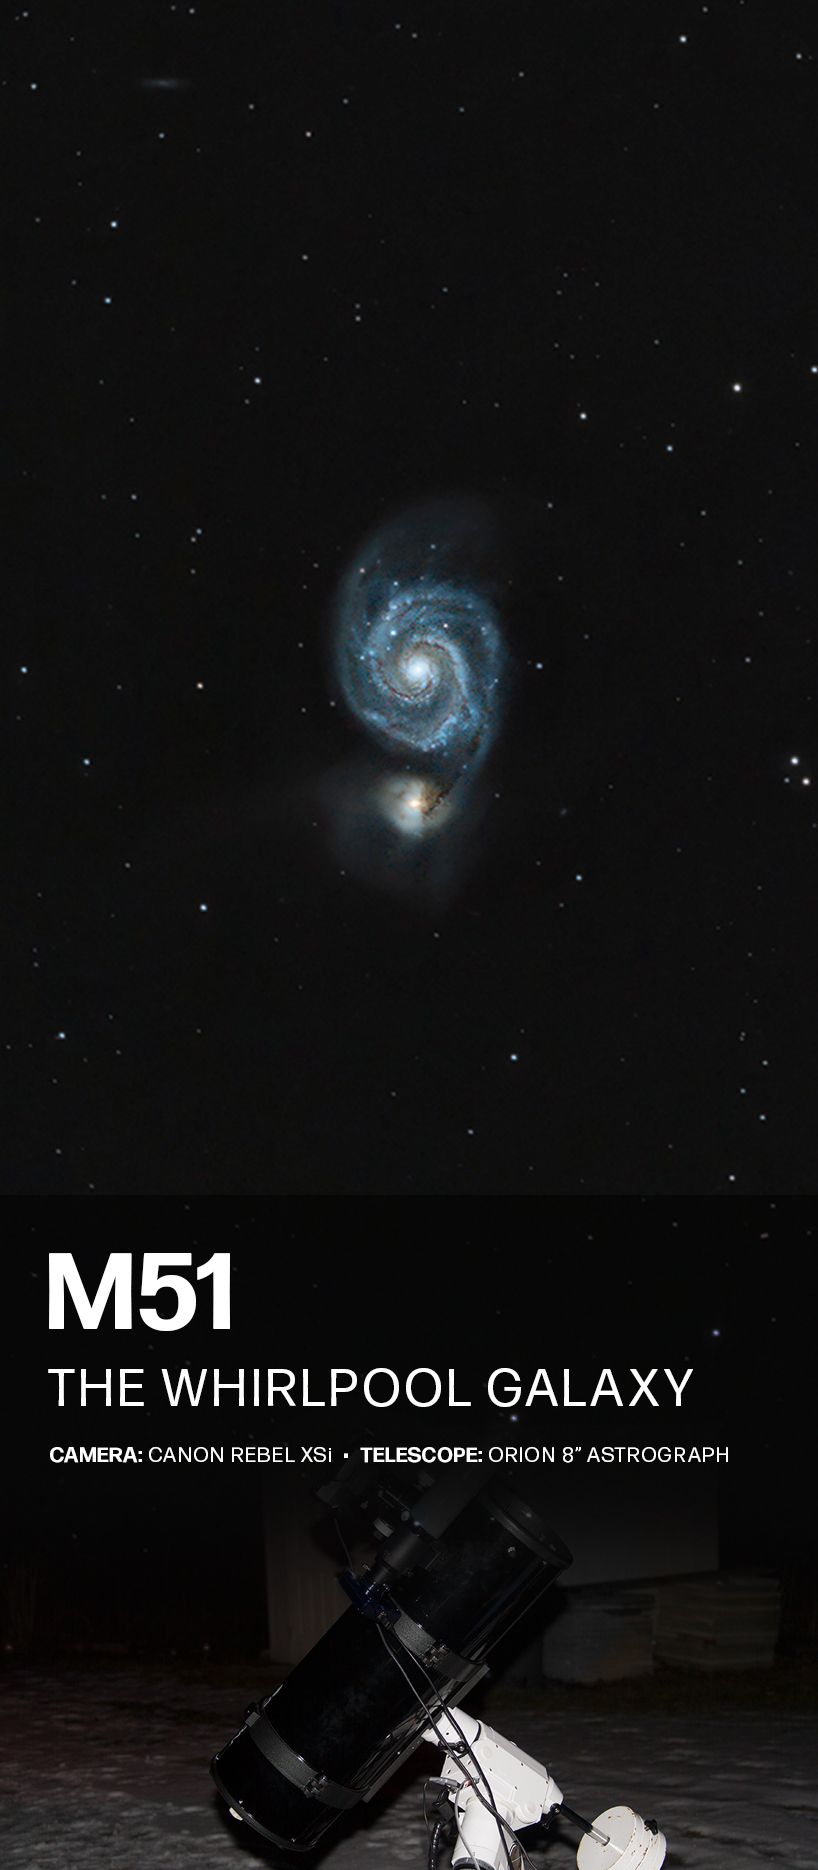 The Whirlpool Galaxy M51 Pictures Facts And Location Whirlpool Galaxy Galaxy Spiral Galaxy